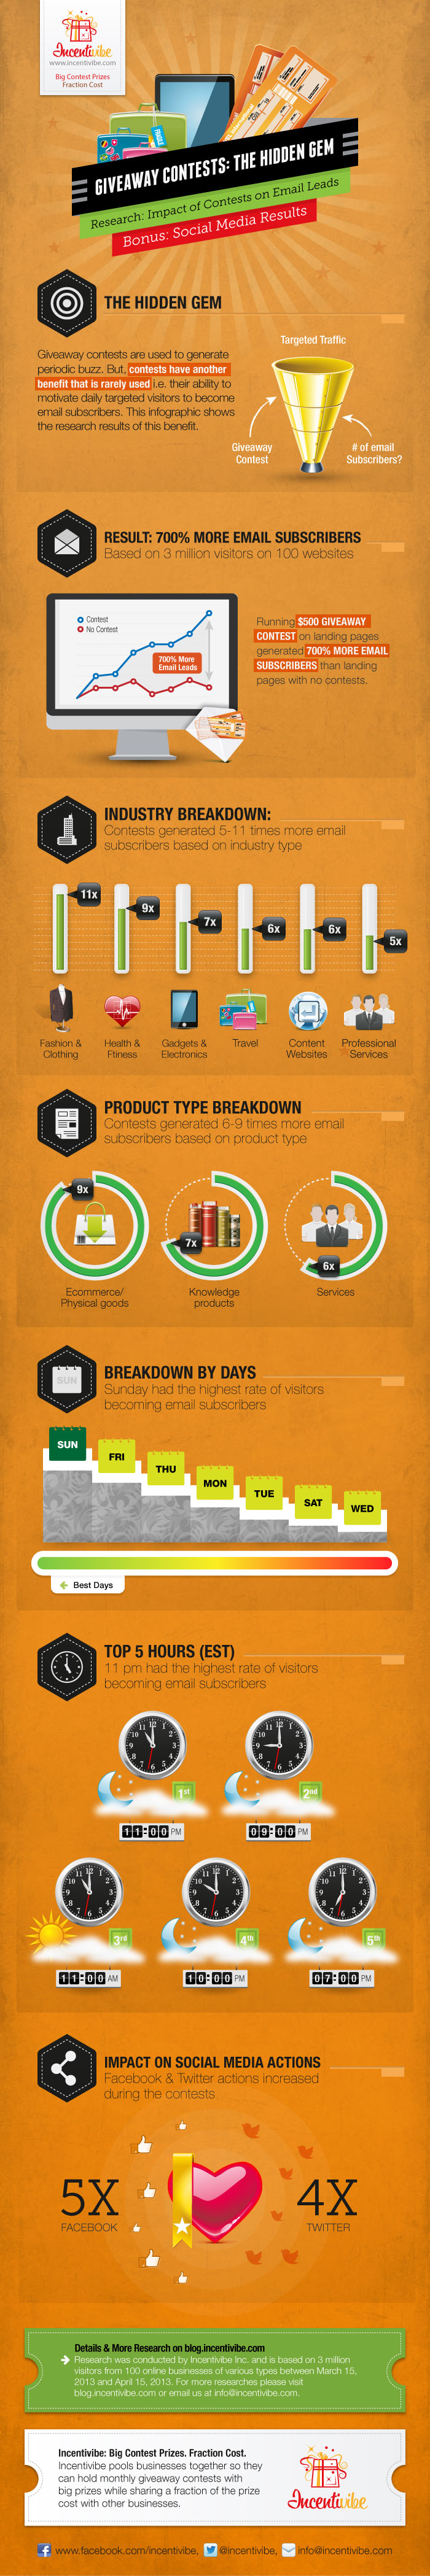 Impact of Contests on Email and Social Media Leads Infographic